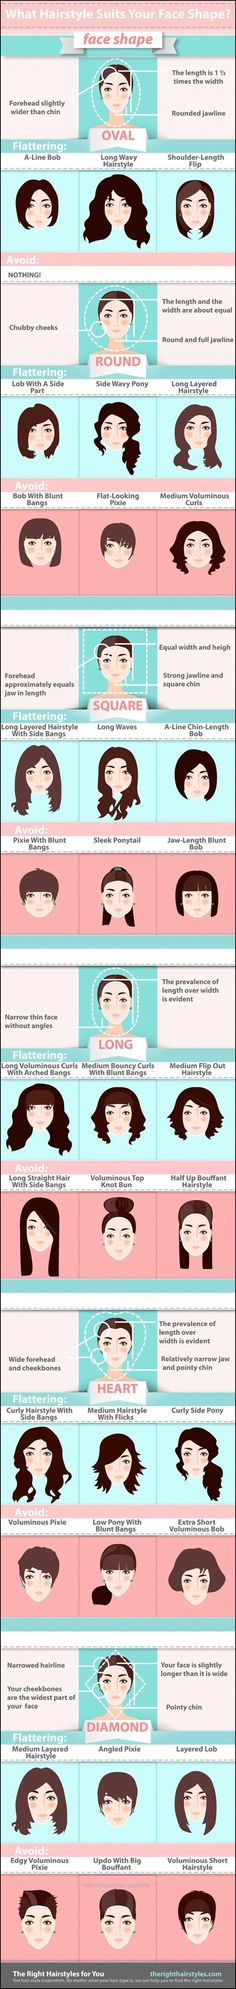 Lovely Check Hairstyles On Your Face The post Check Hairstyles On Your Face… appeared first on Elle Hairstyles .